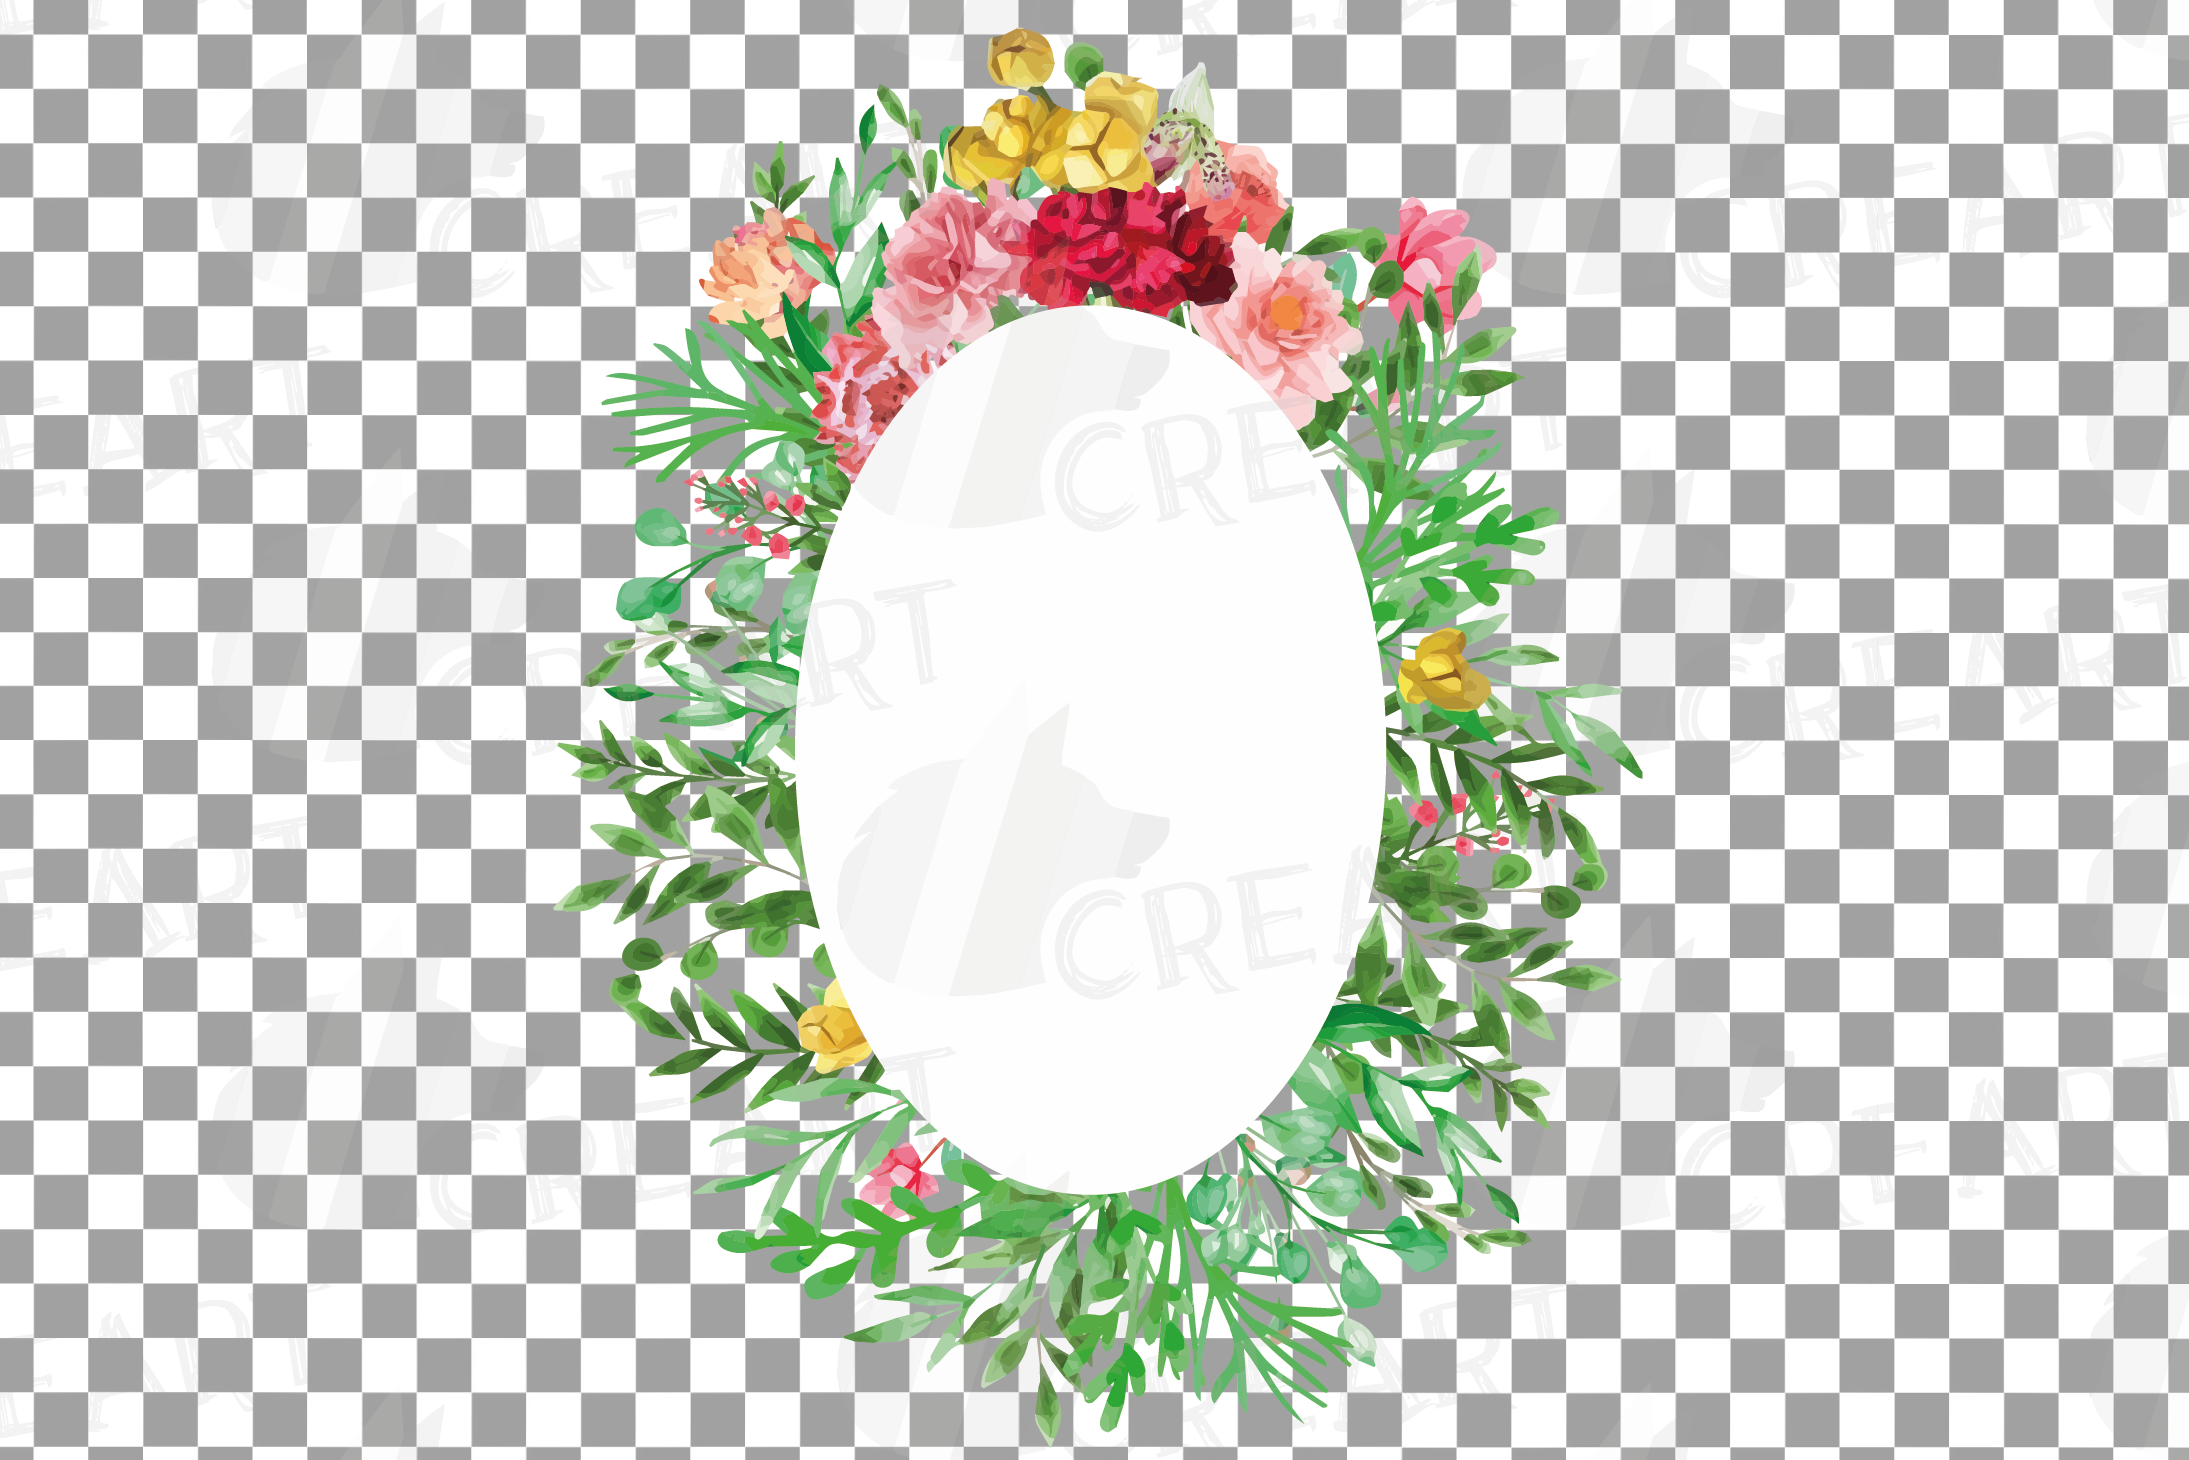 Watercolor floral floral frames and borders clip art pack example image 17